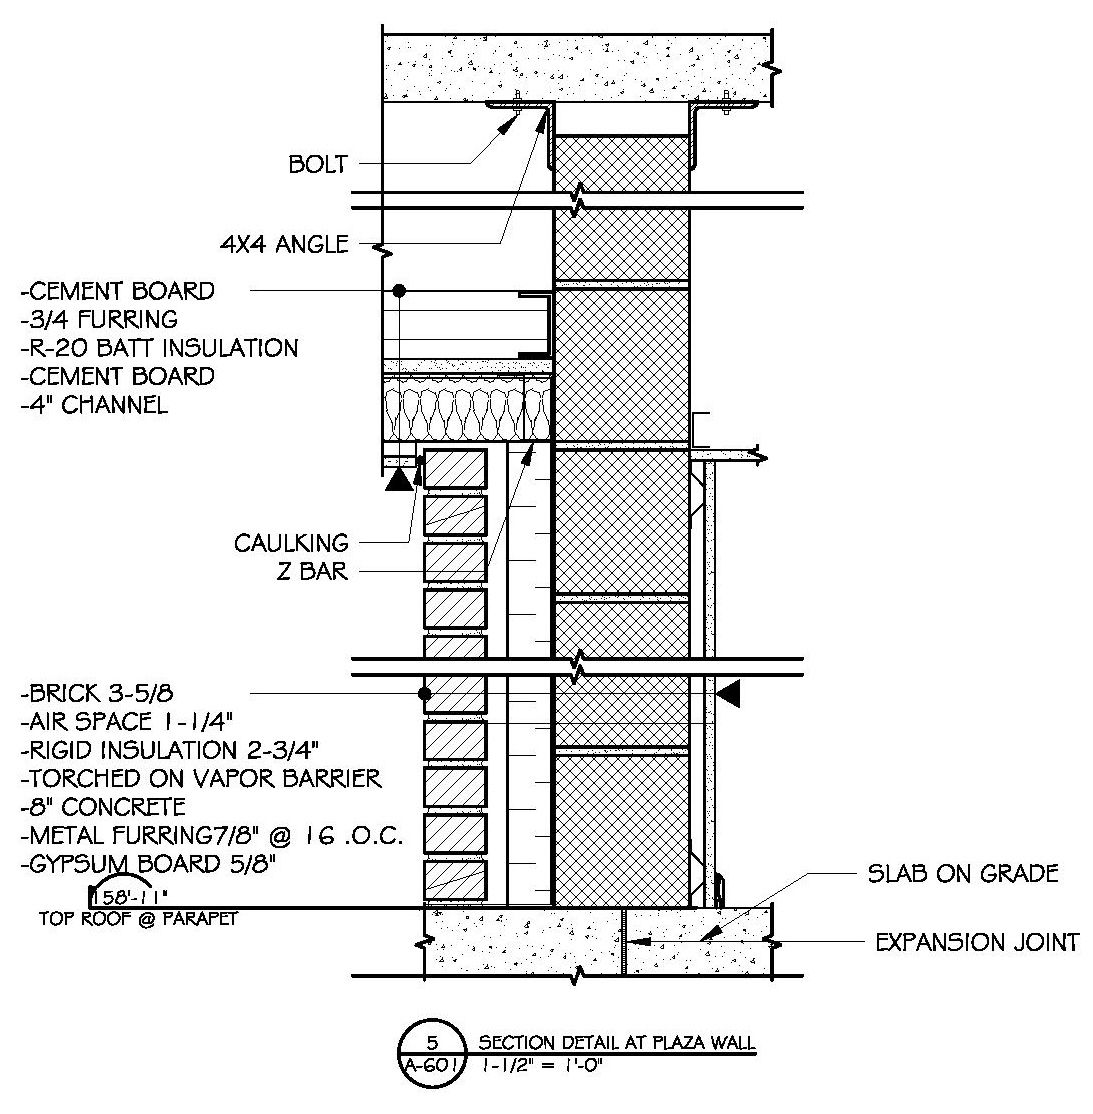 Commercial building plans by raymond alberga at for Commercial building plans